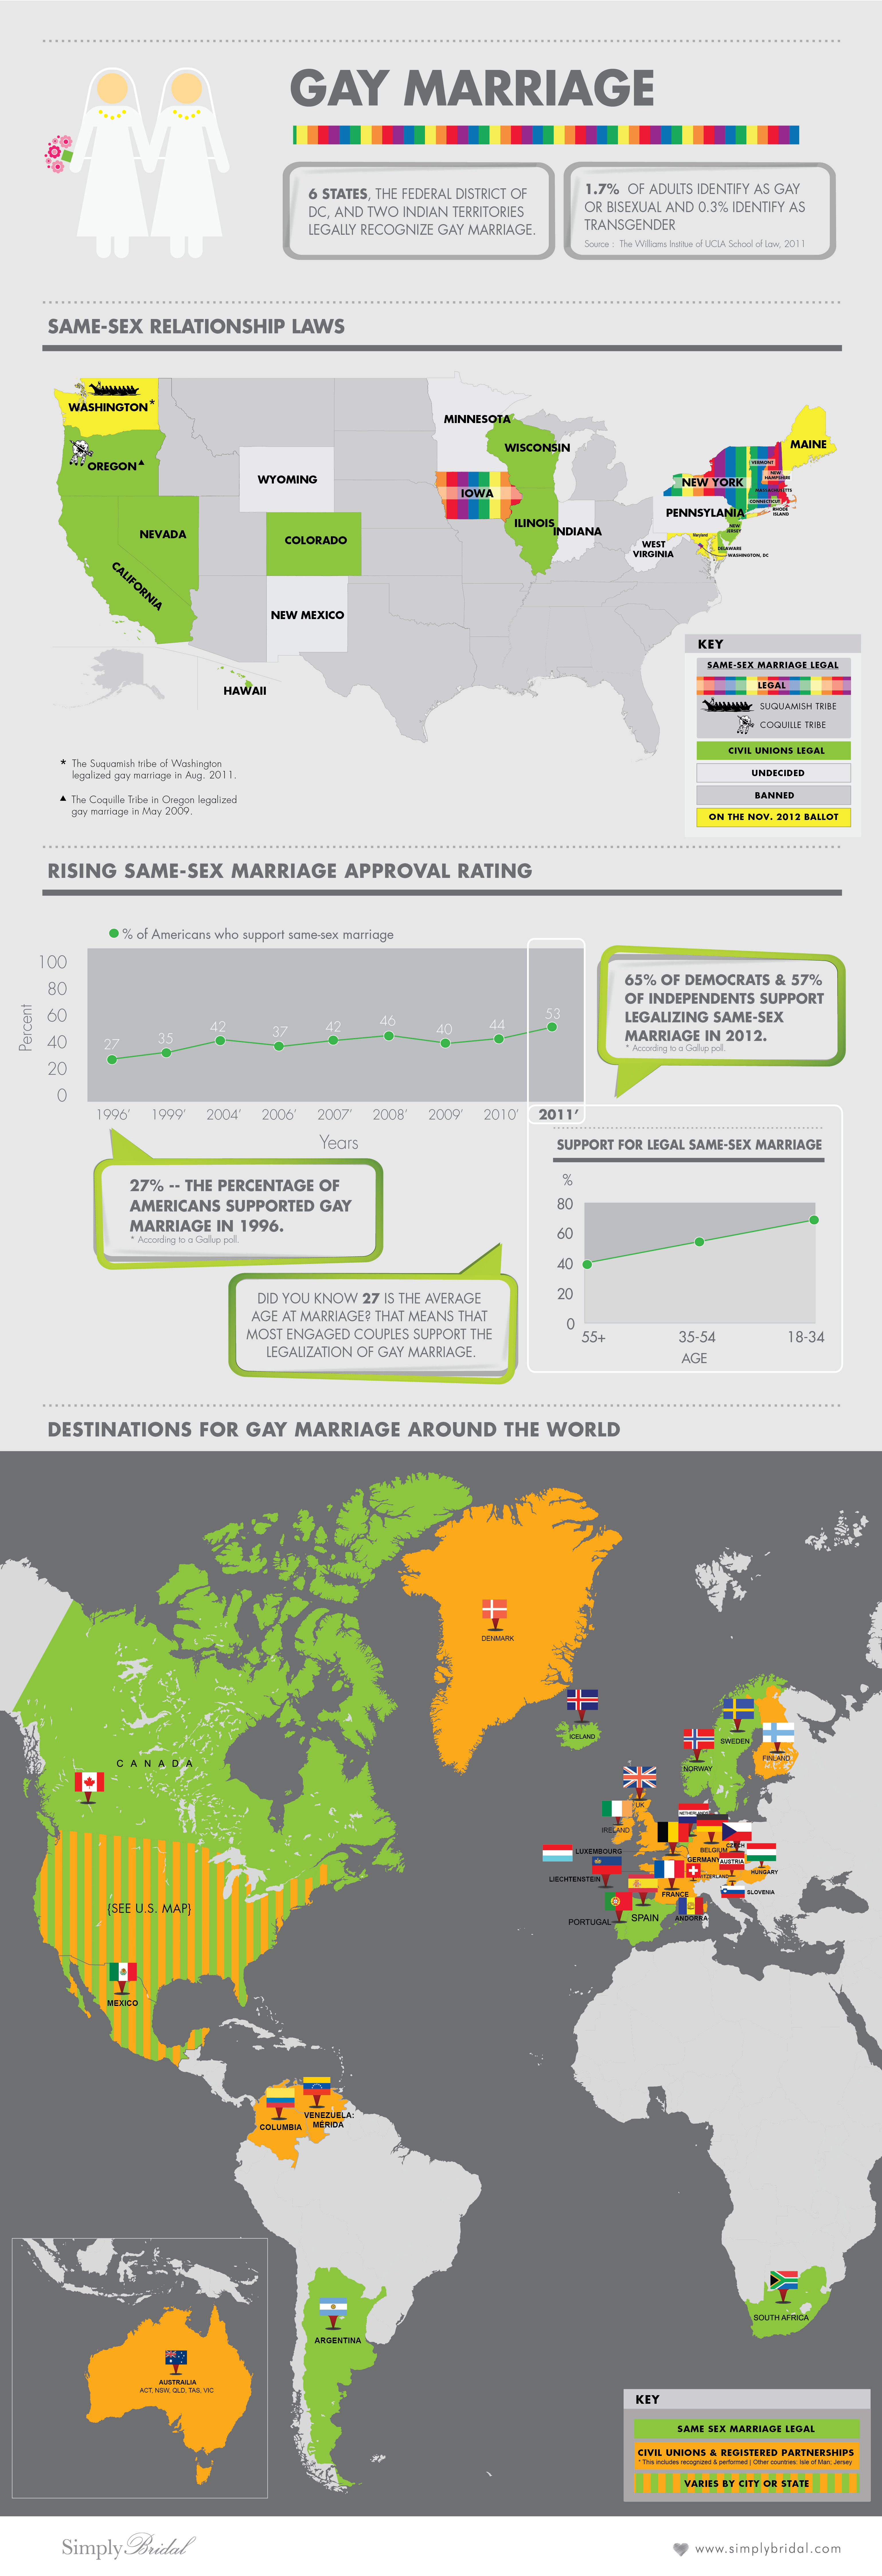 Global Gay Marriage Trends and Statistics